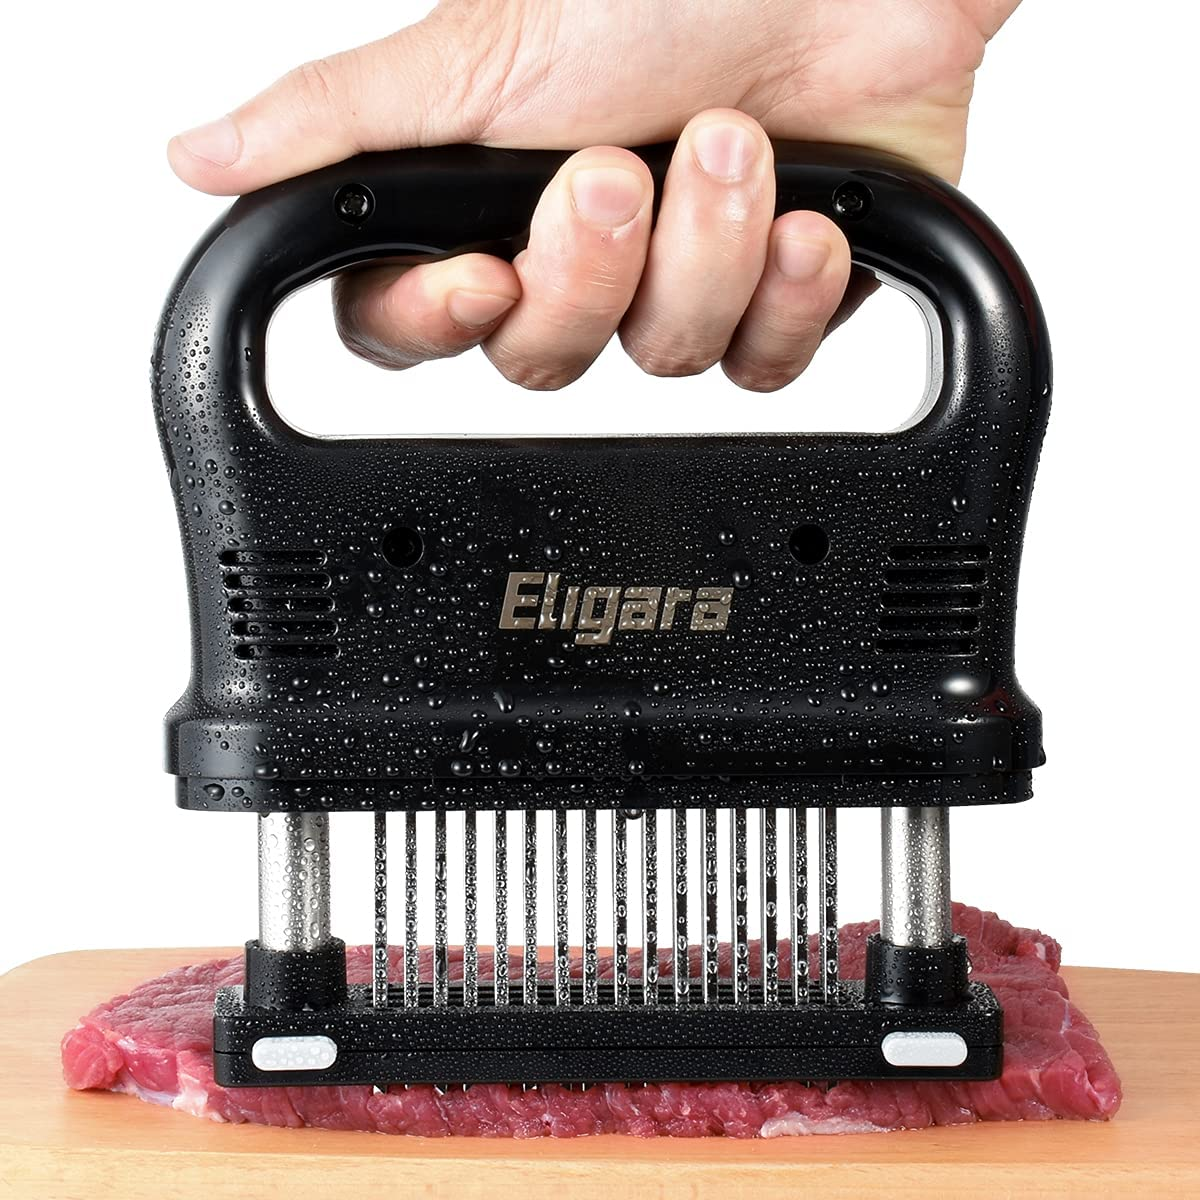 Max 71% OFF Eligara Wholesale Meat Tenderizer with 48 Ste Blade Stainless Steel Needle